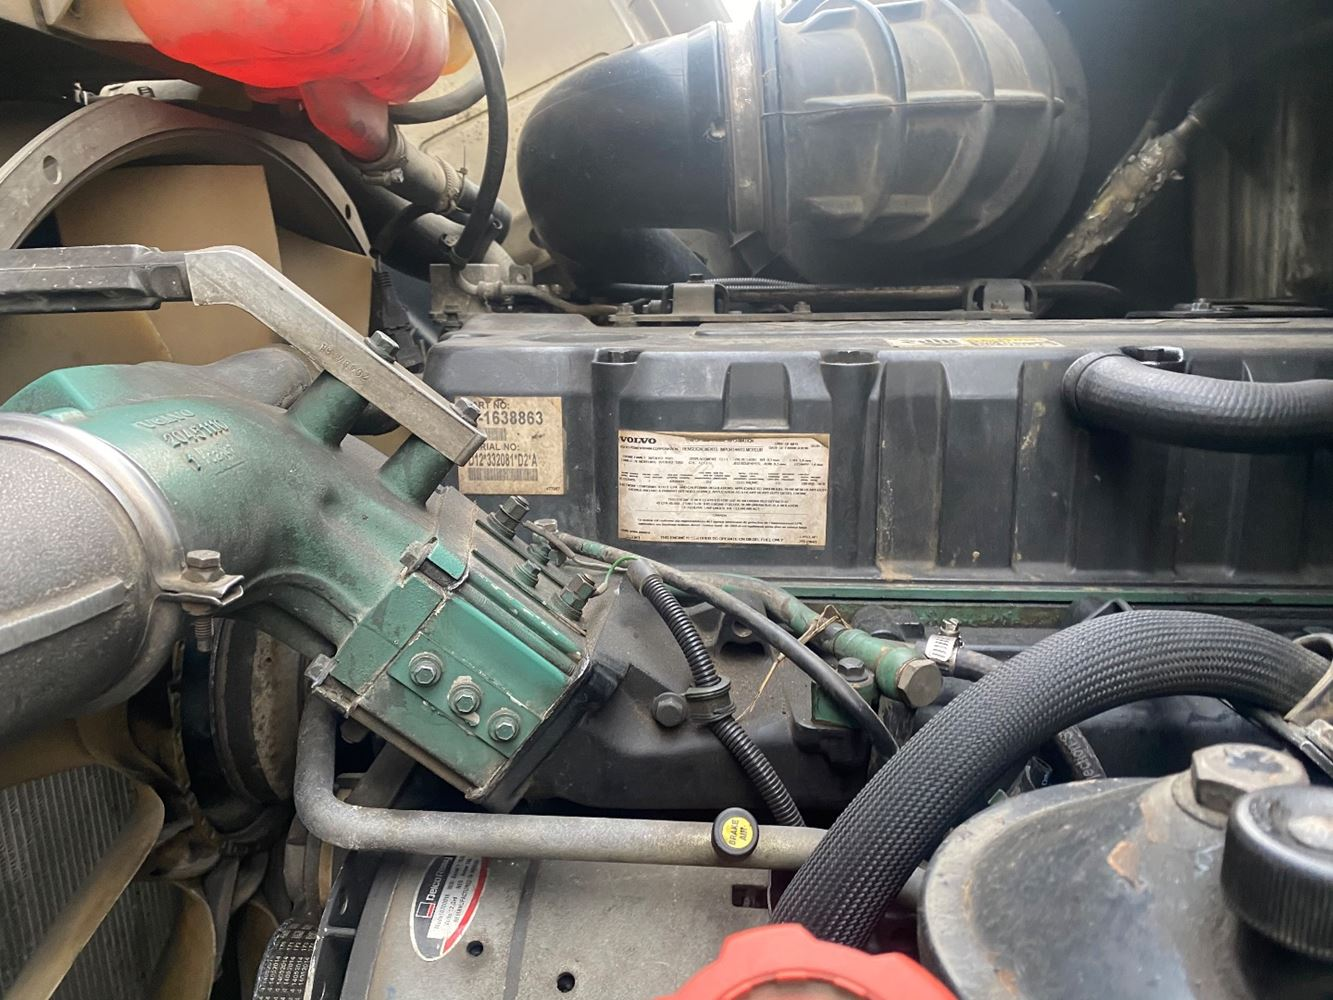 2004 VOLVO VE D12 ENGINE ASSEMBLY TRUCK PARTS #694342